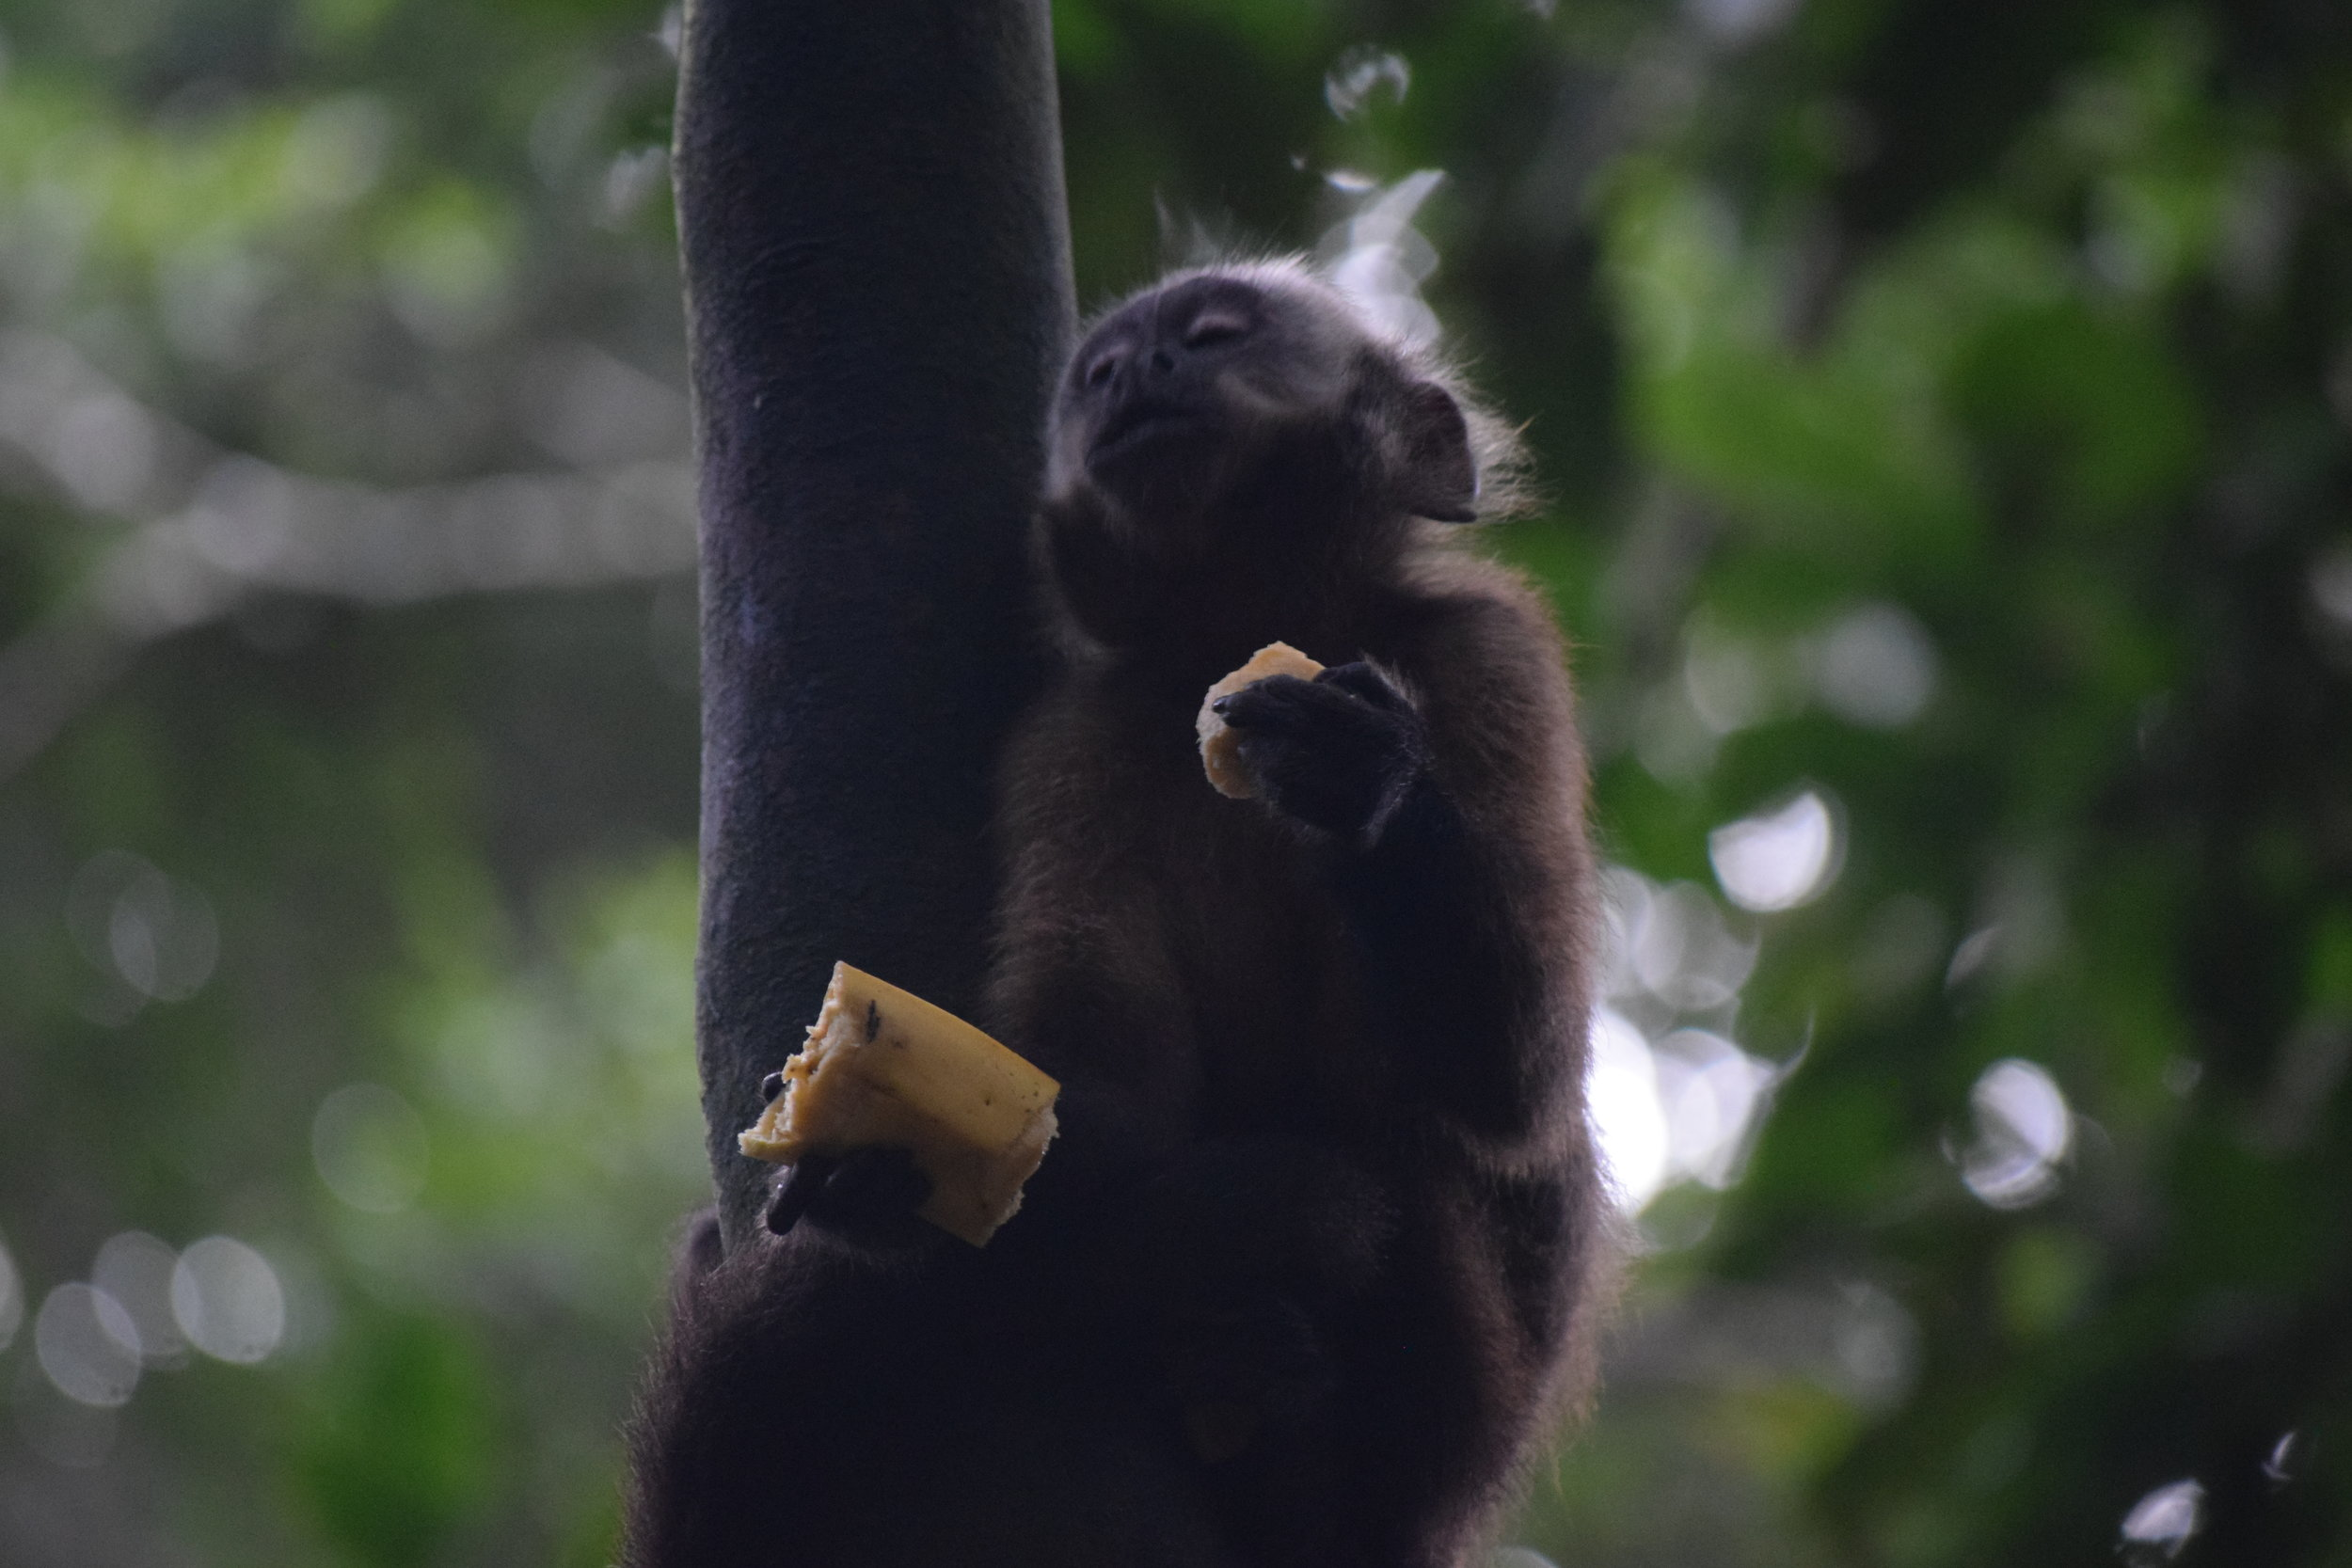 Jeff snapped this photo of pure ecstasy on a capuchin monkey's face while eating a banana. This picture is one of my favorite from our entire trip. It's going to make an excellent meme...